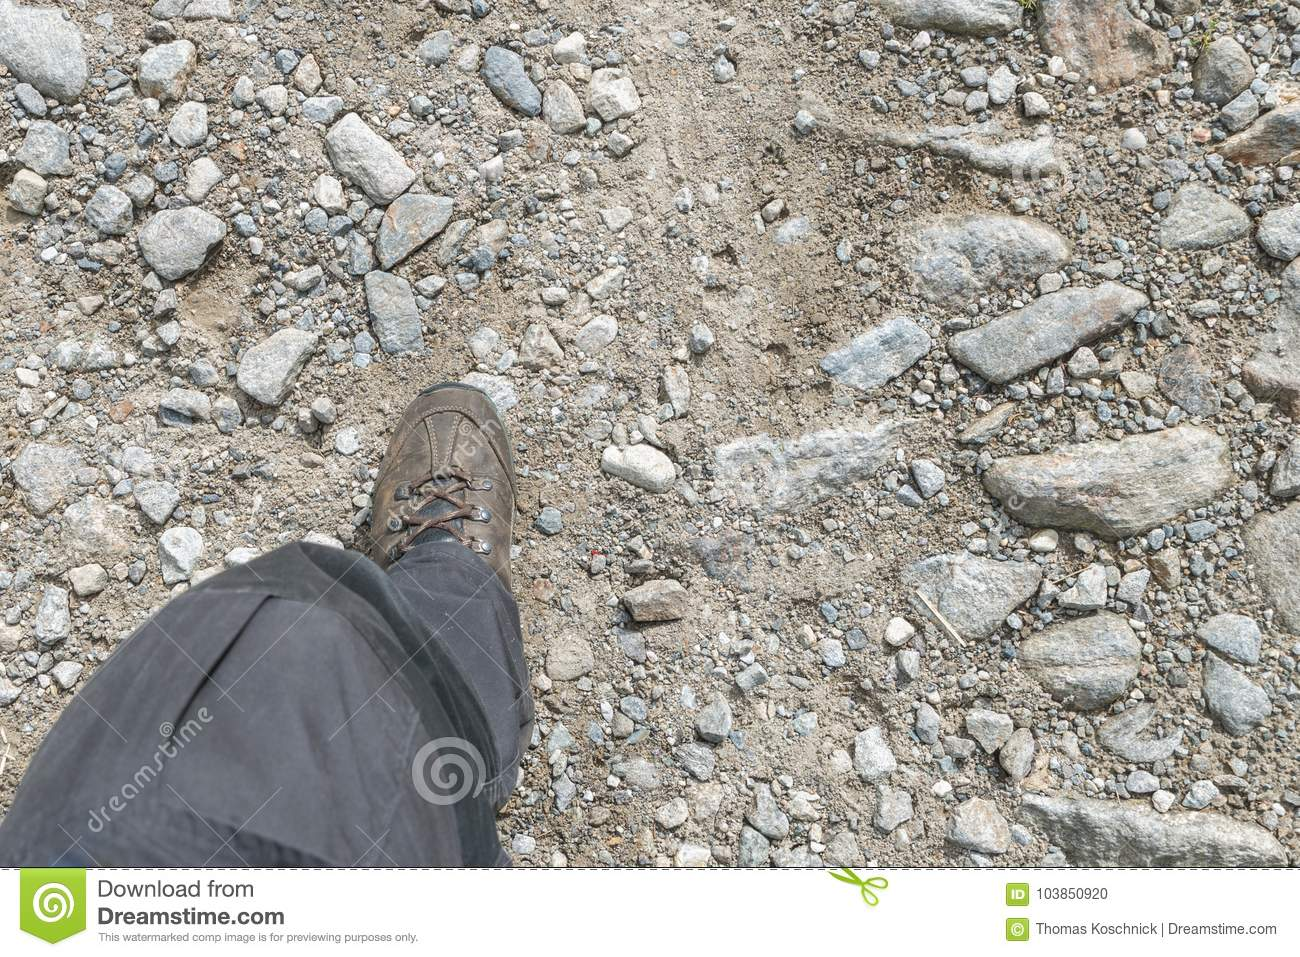 Hiking boots on a stony hiking trail